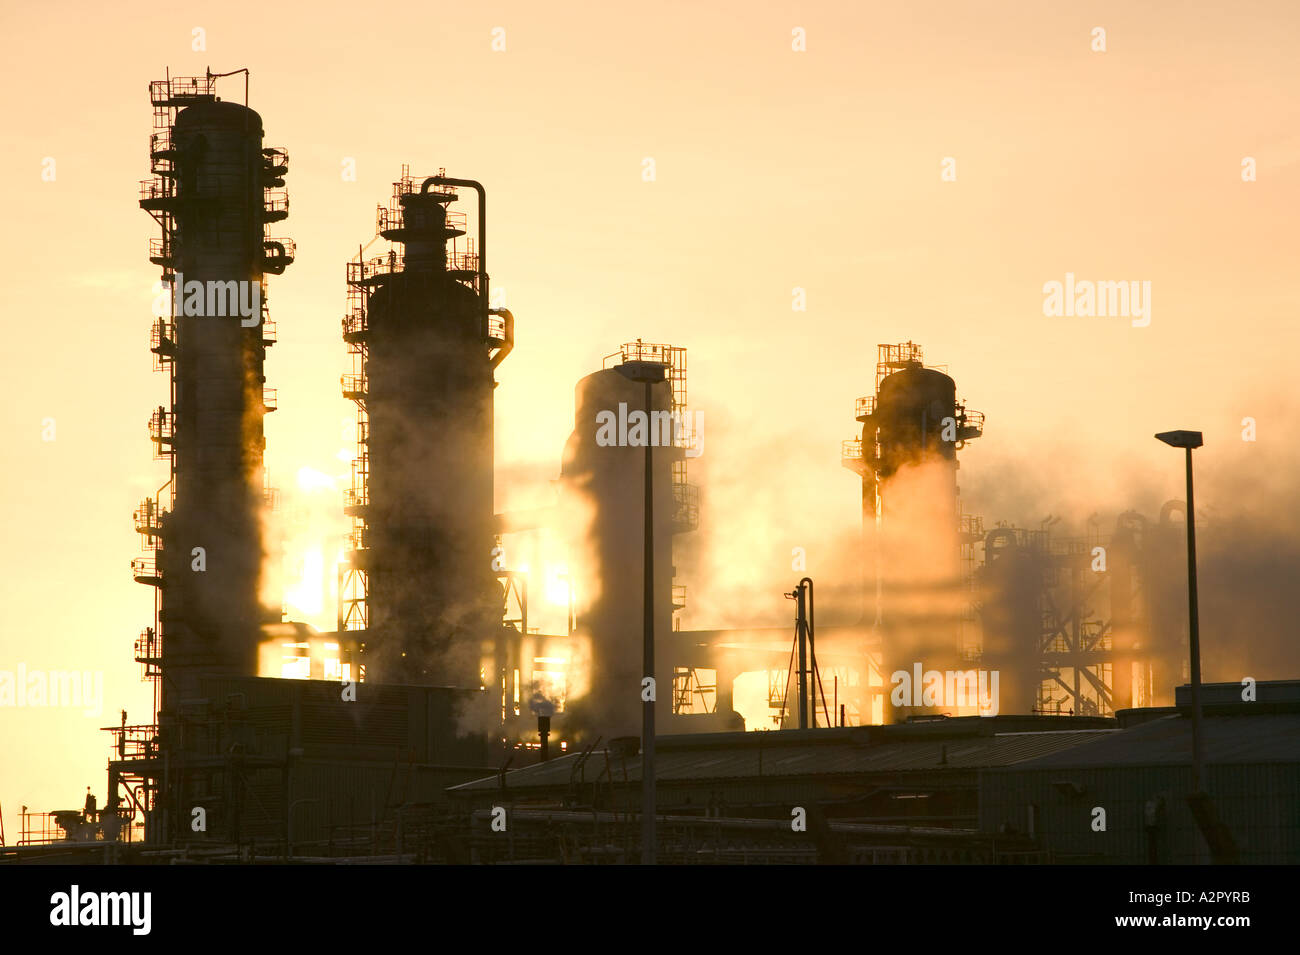 emmissions from a petrochemical plant at Midlesborough,  Teeside, at Dawn, UK Stock Photo